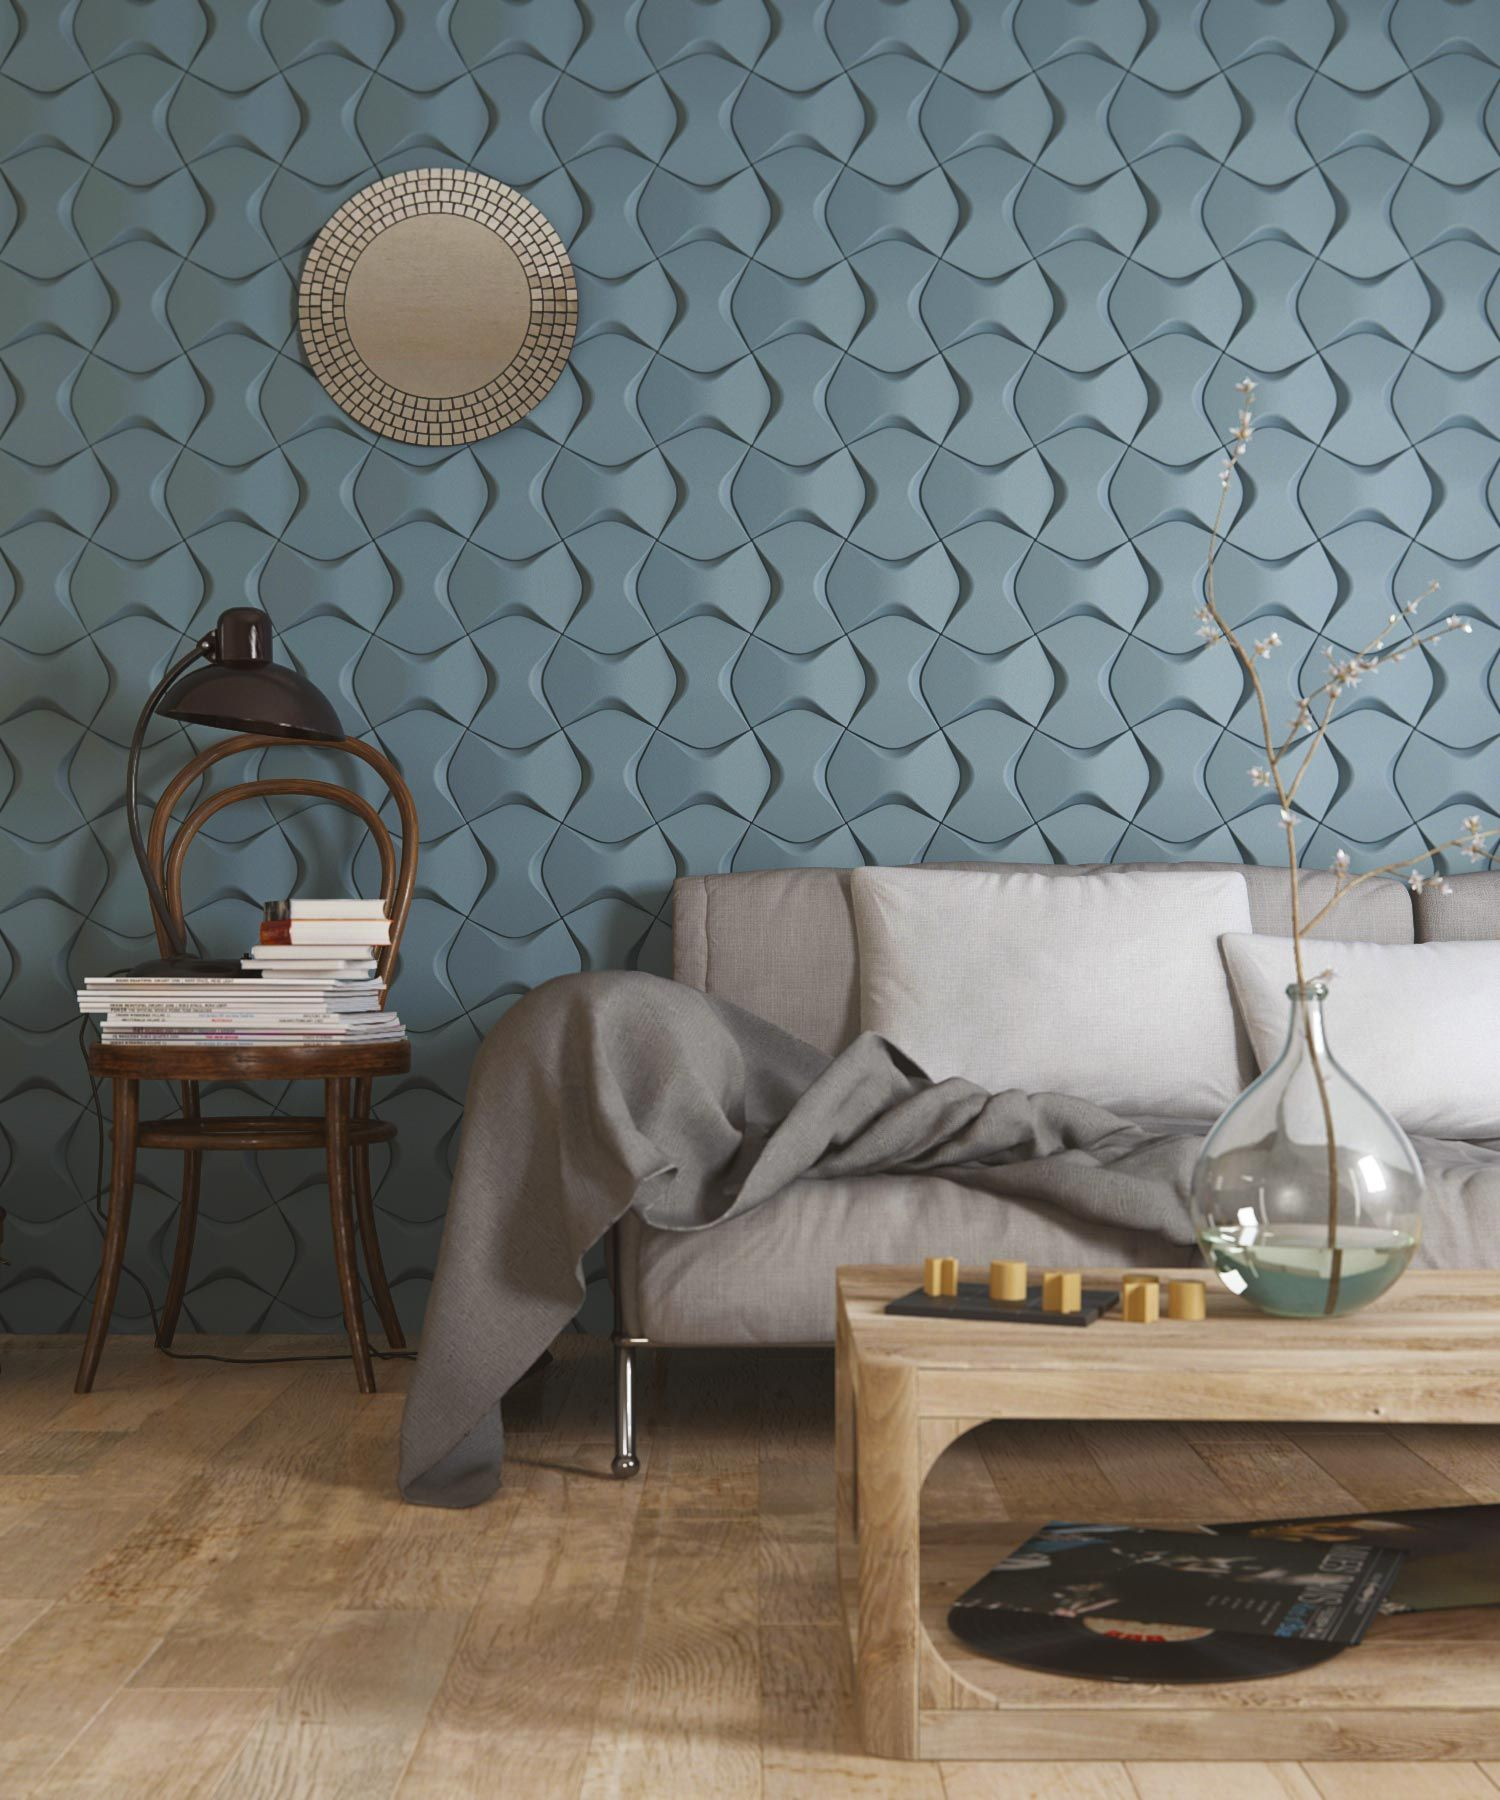 NMC expands its range of decorative wall